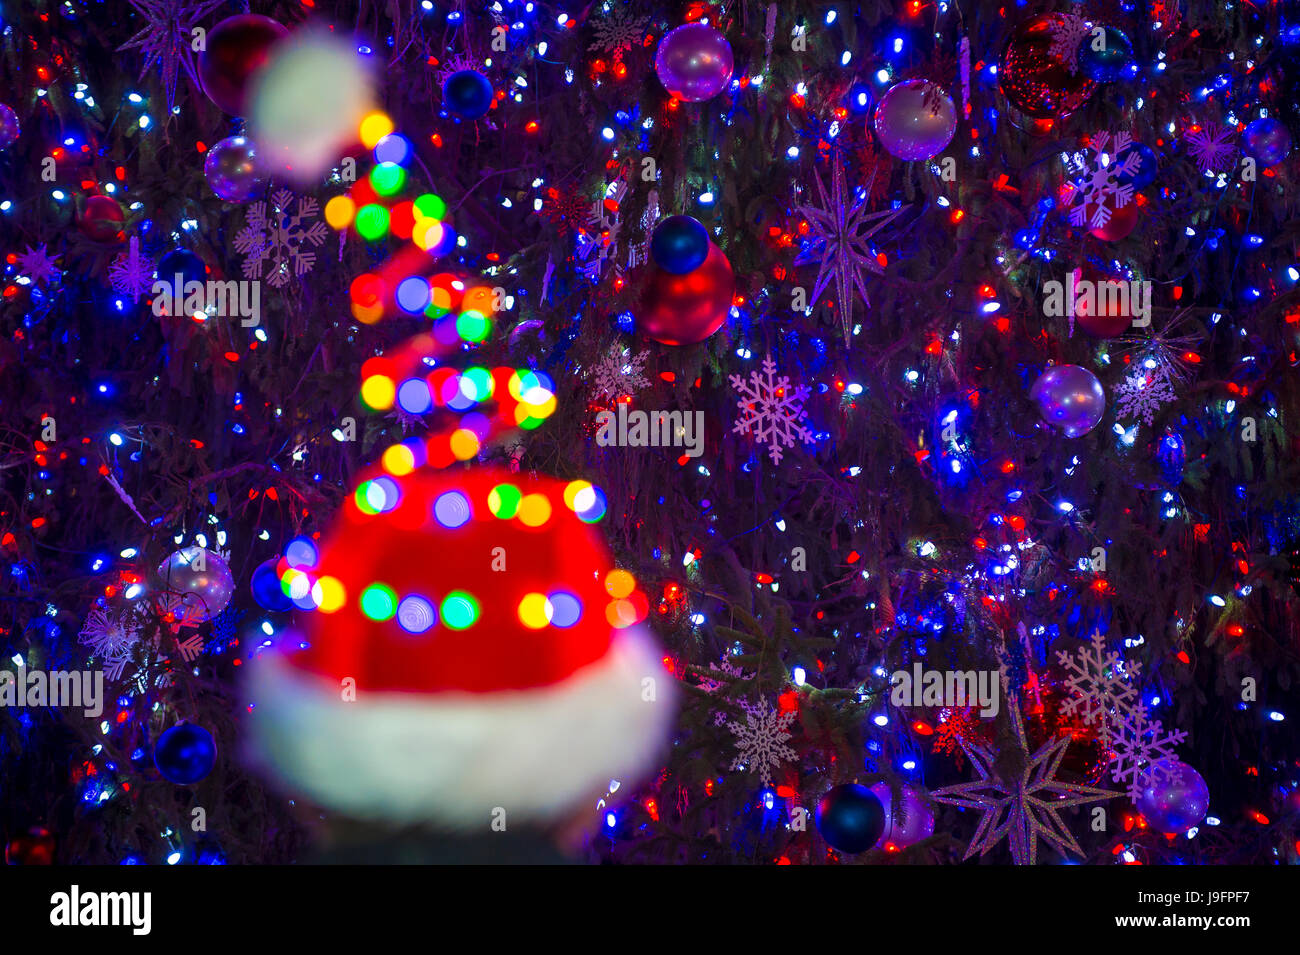 Colorful holiday lights glow on a Santa hat in front of a twinkling Christmas tree background - Stock Image